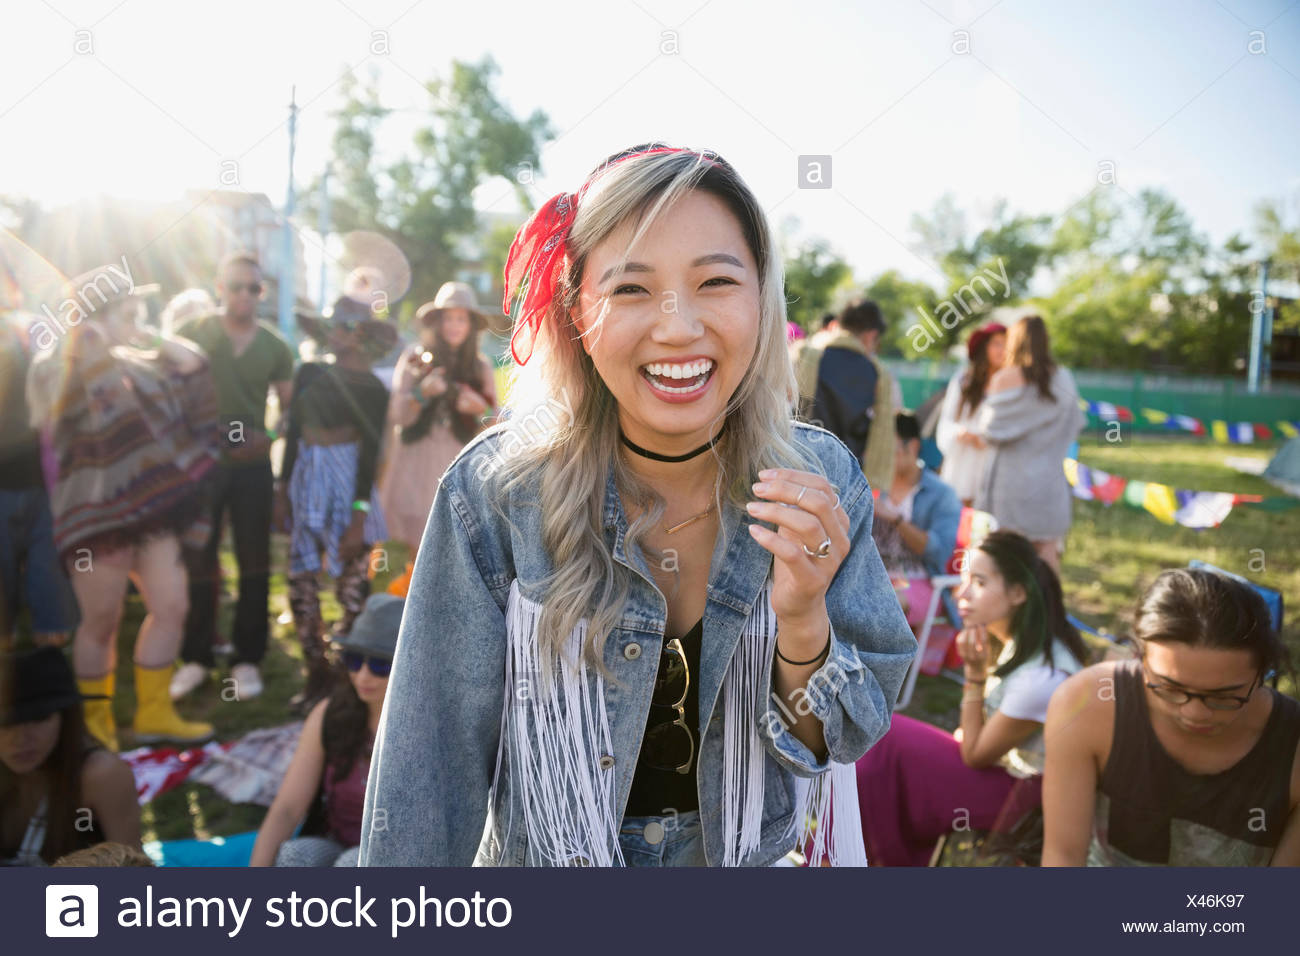 Riant Portrait young woman at summer music festival camping Photo Stock